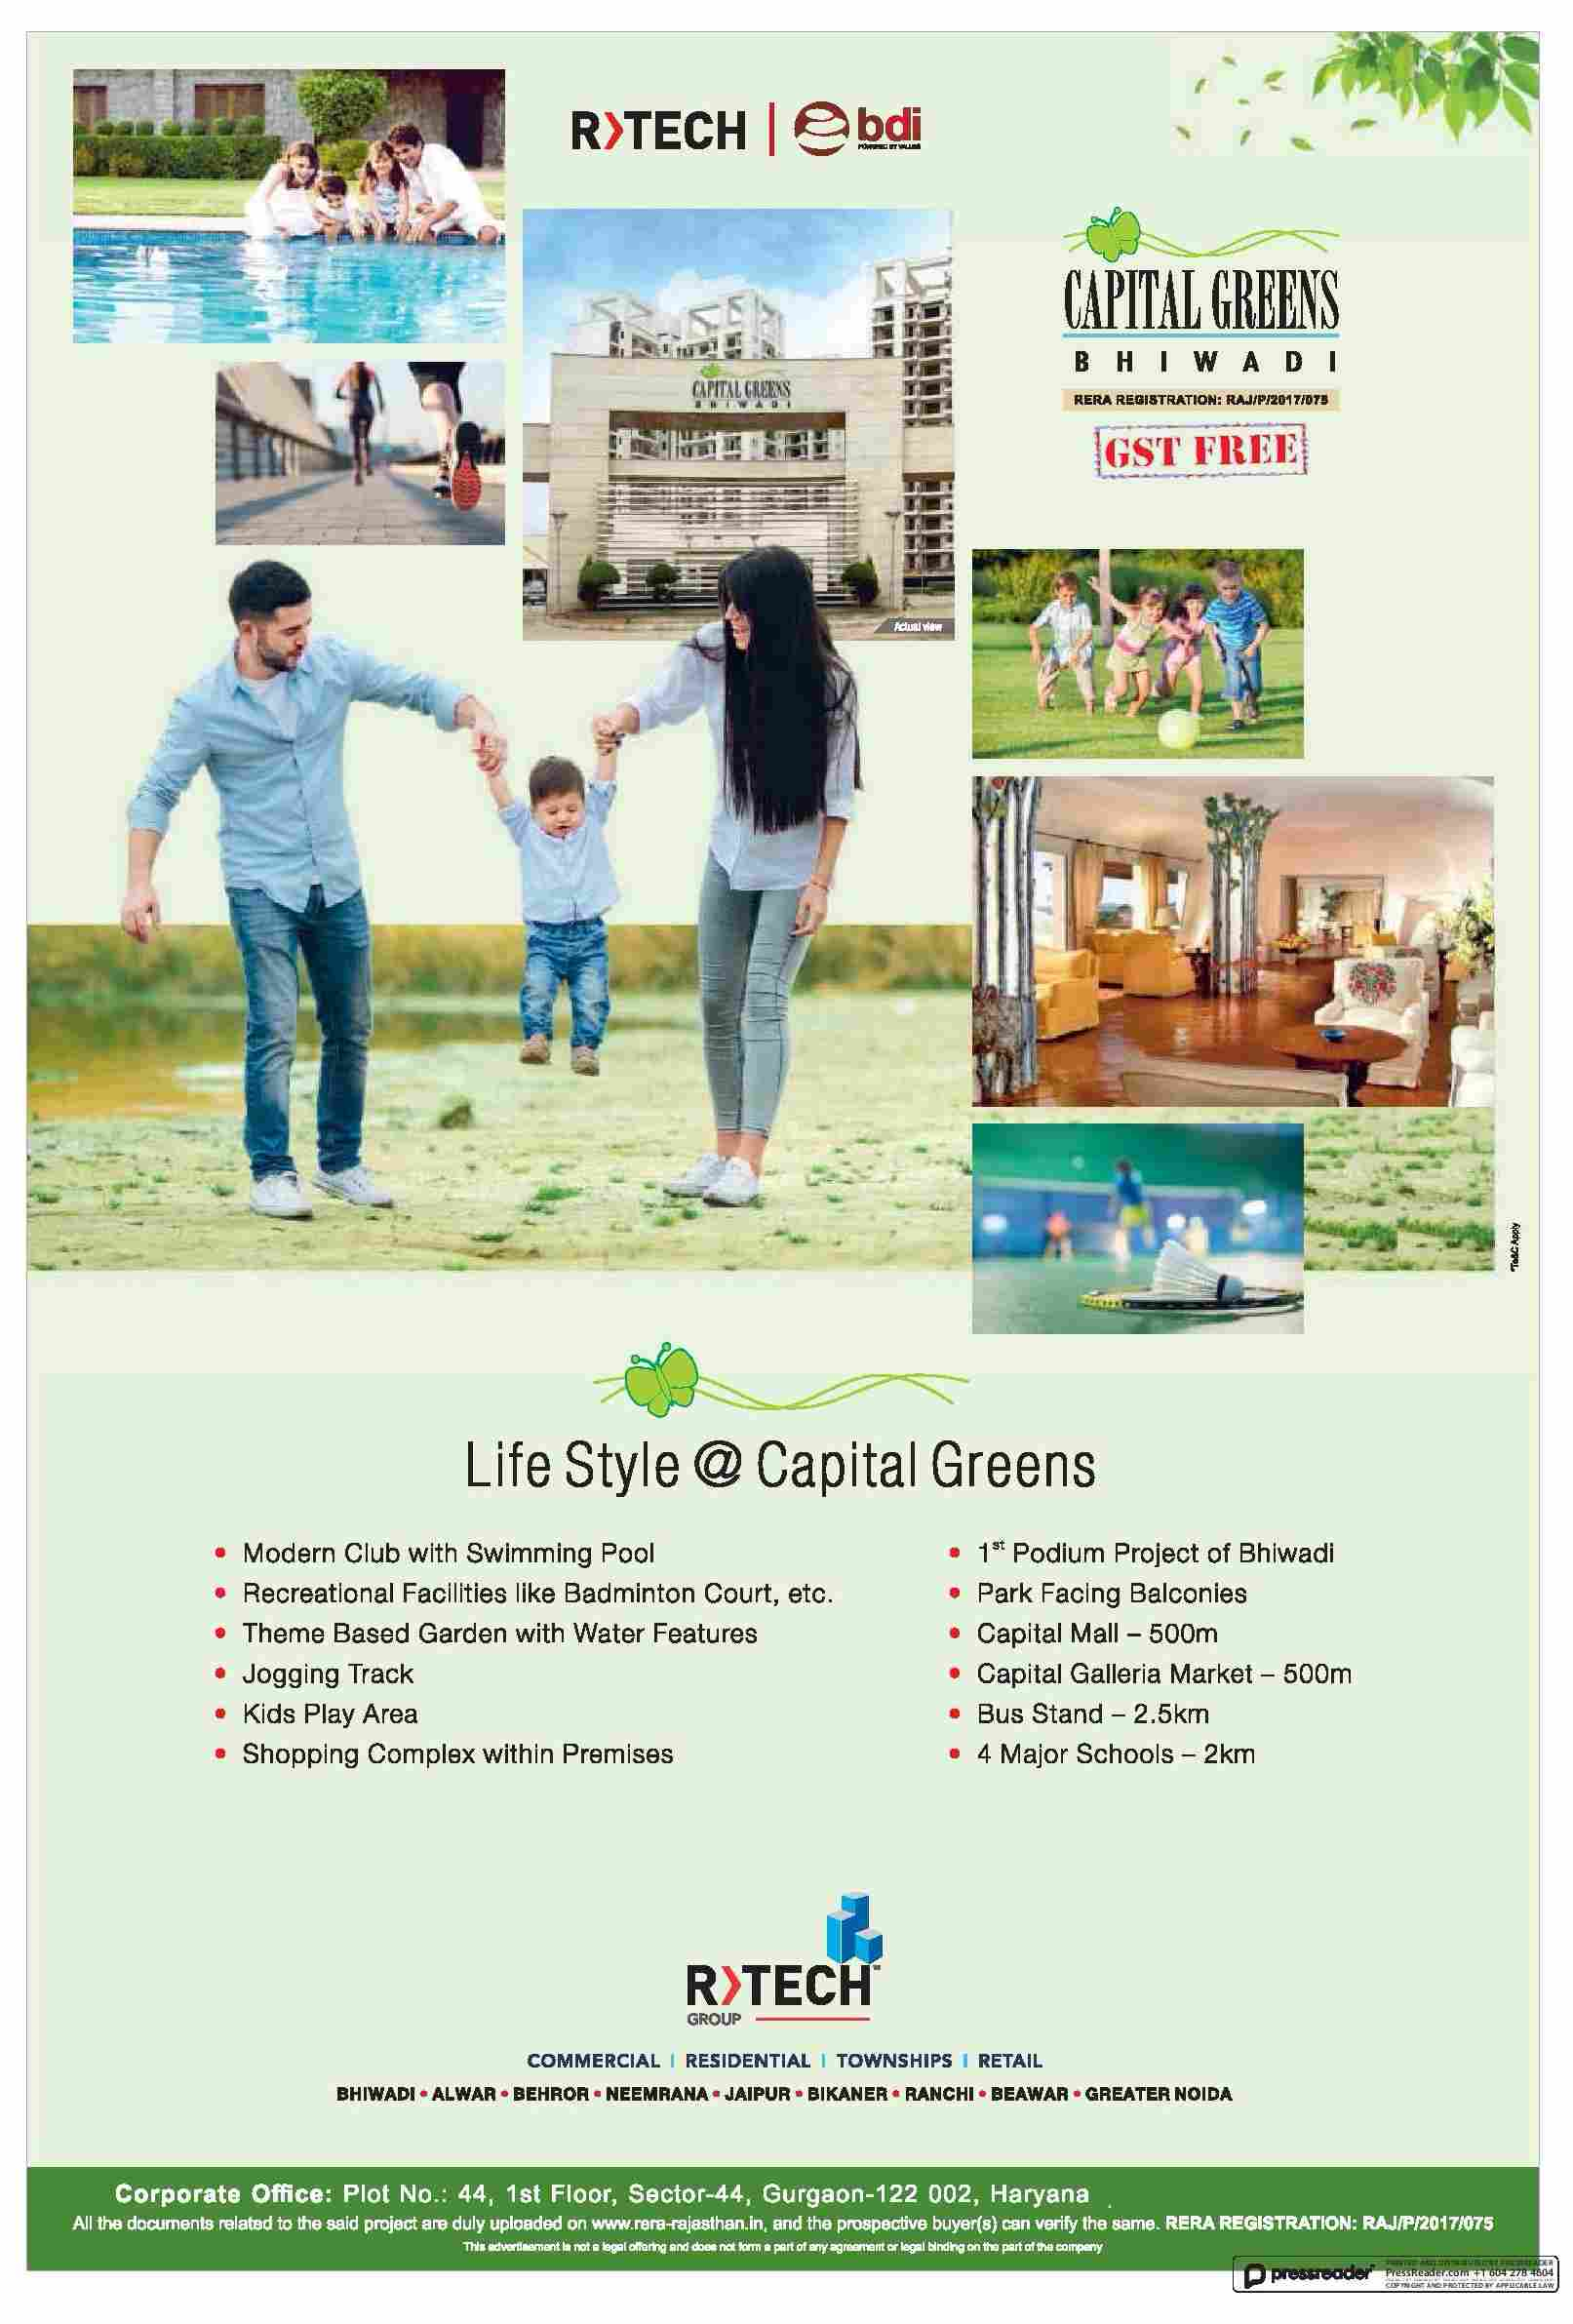 Enjoy The Modern Lifestyle At R Tech Capital Greens Bhiwadi